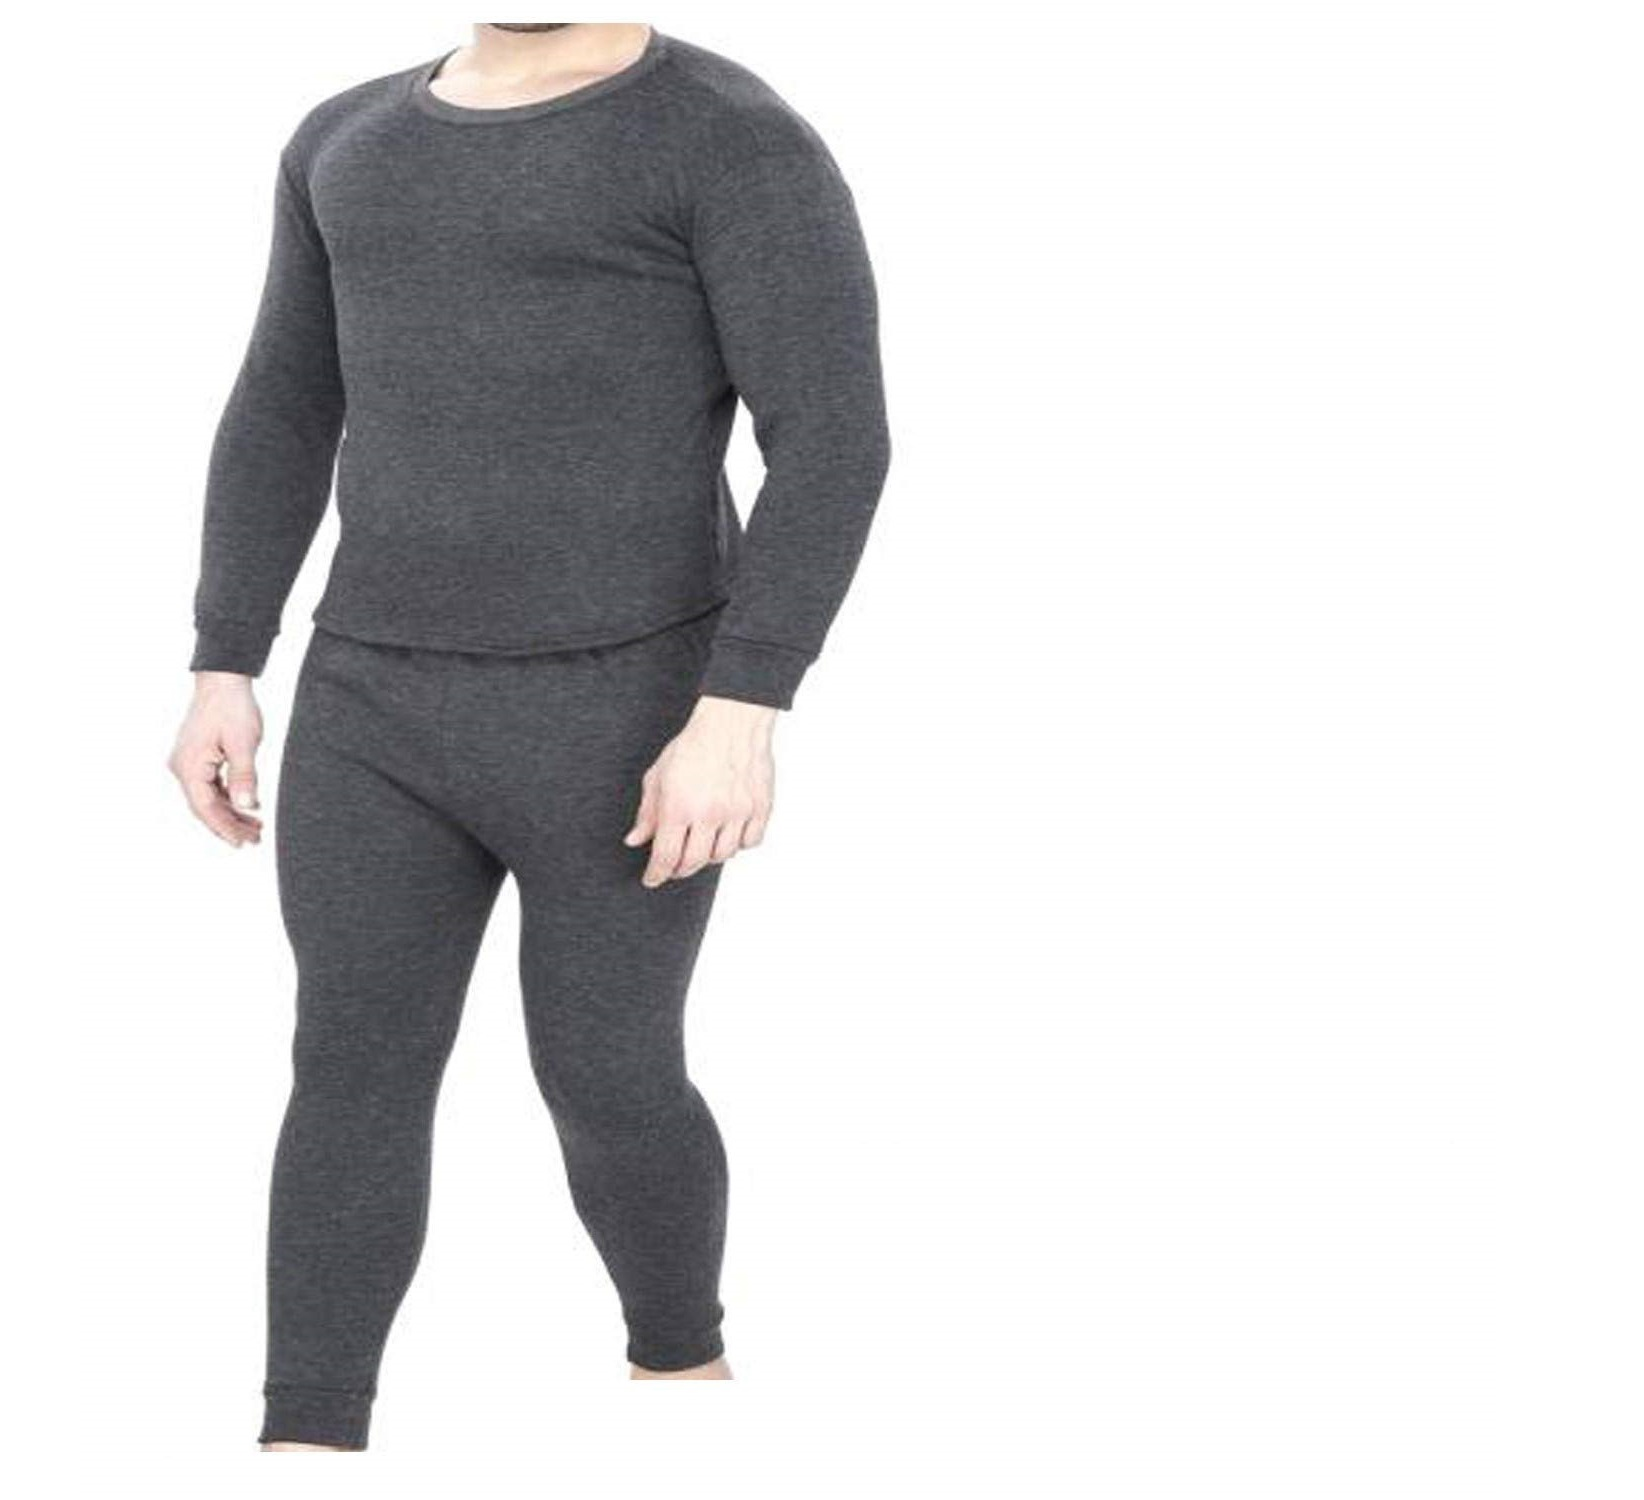 thermal inner wear online